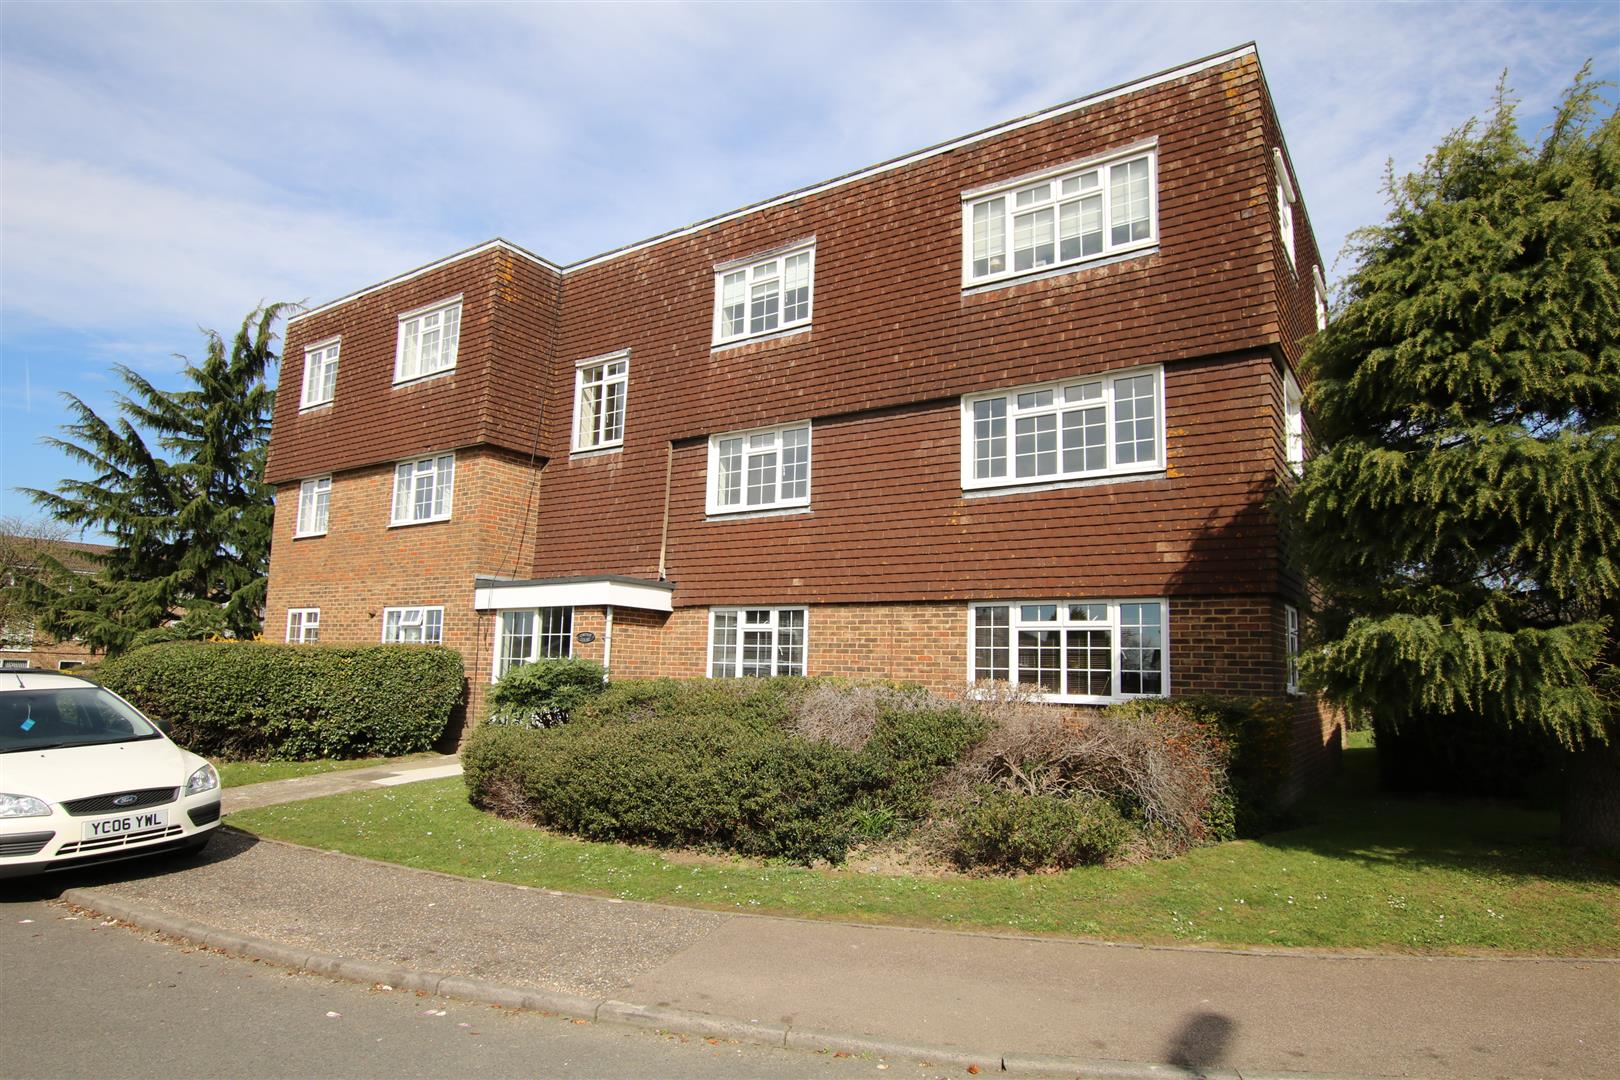 Northdown Close, Horsham